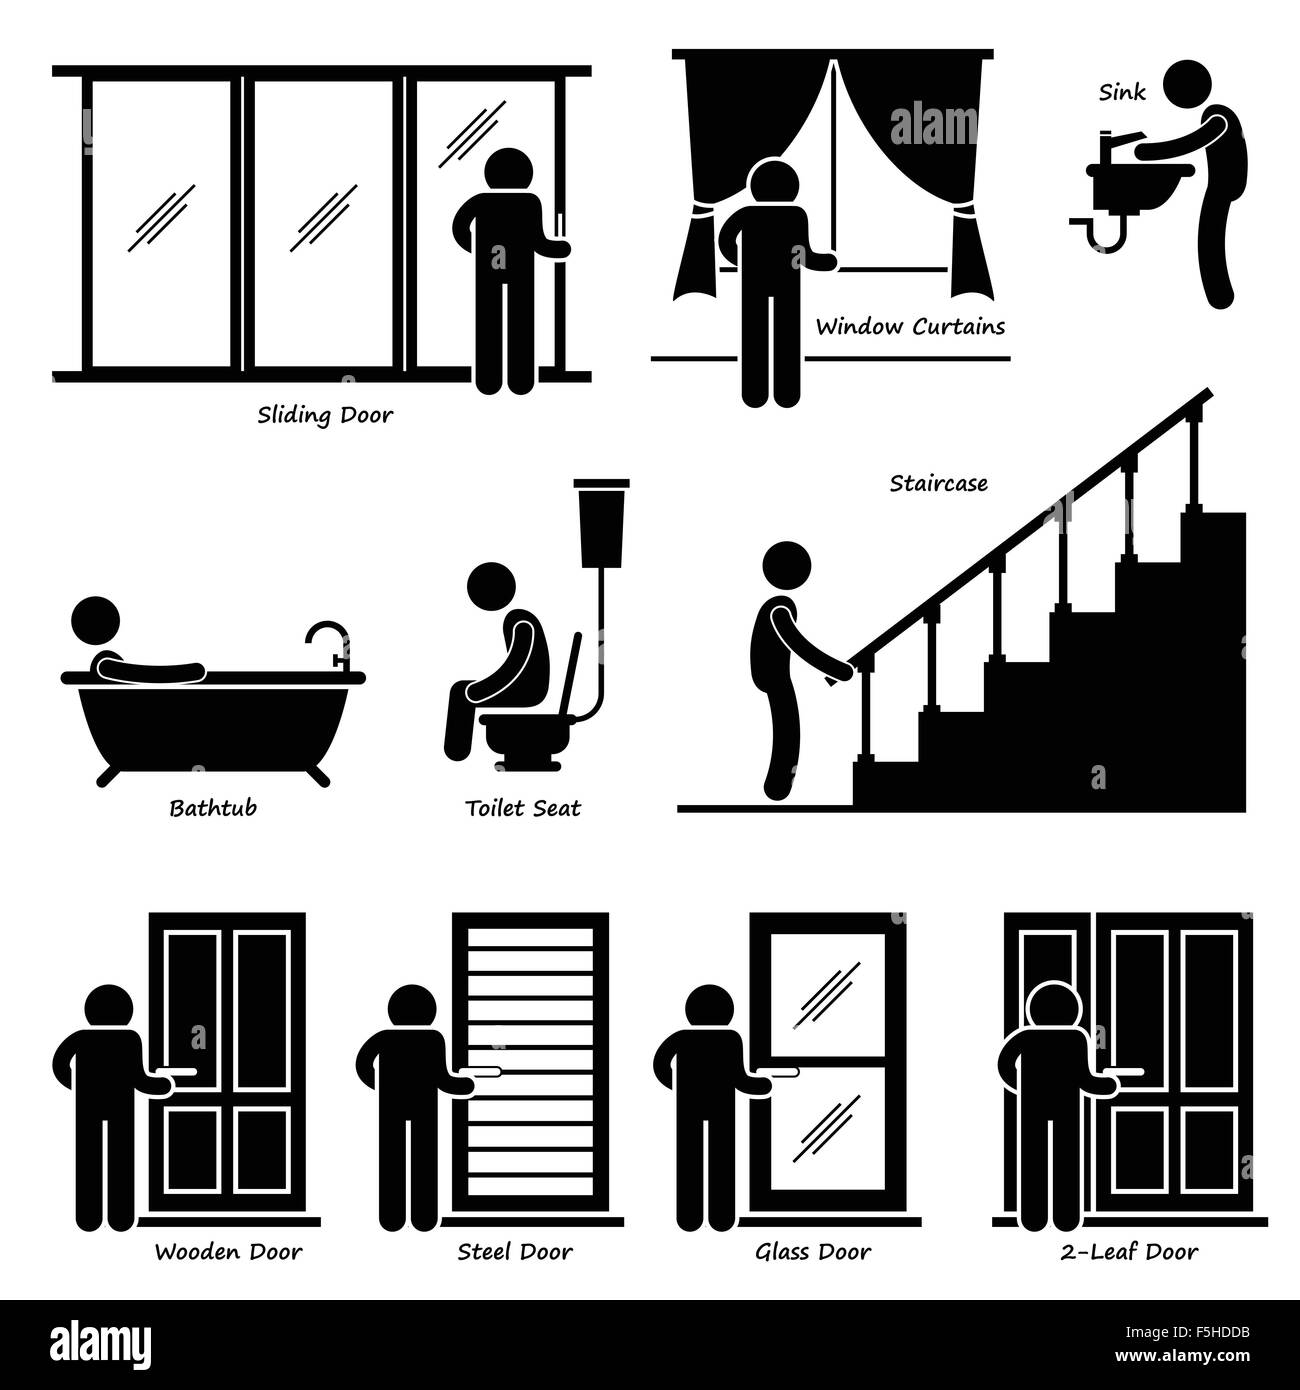 Home House Indoor Fixtures Stick Figure Pictogram Icon Cliparts - Stock Image